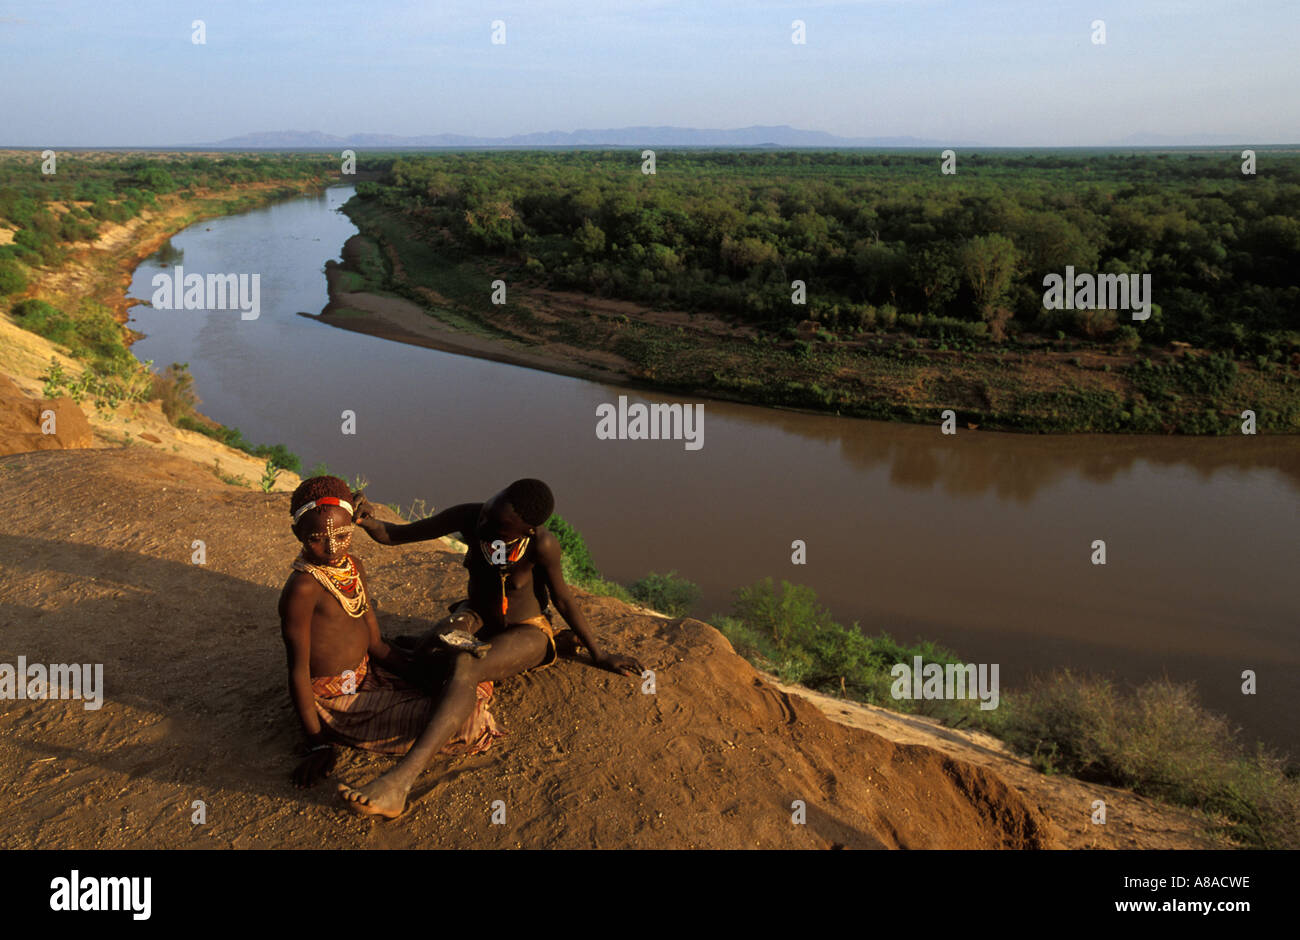 an introduction to the omo river valley Omo child's mission is to stop mingi, the ritualistic killing of infants and children, and to provide education and a safe, nurturing shelter for rescued children in the omo river valley of southwest ethiopia.